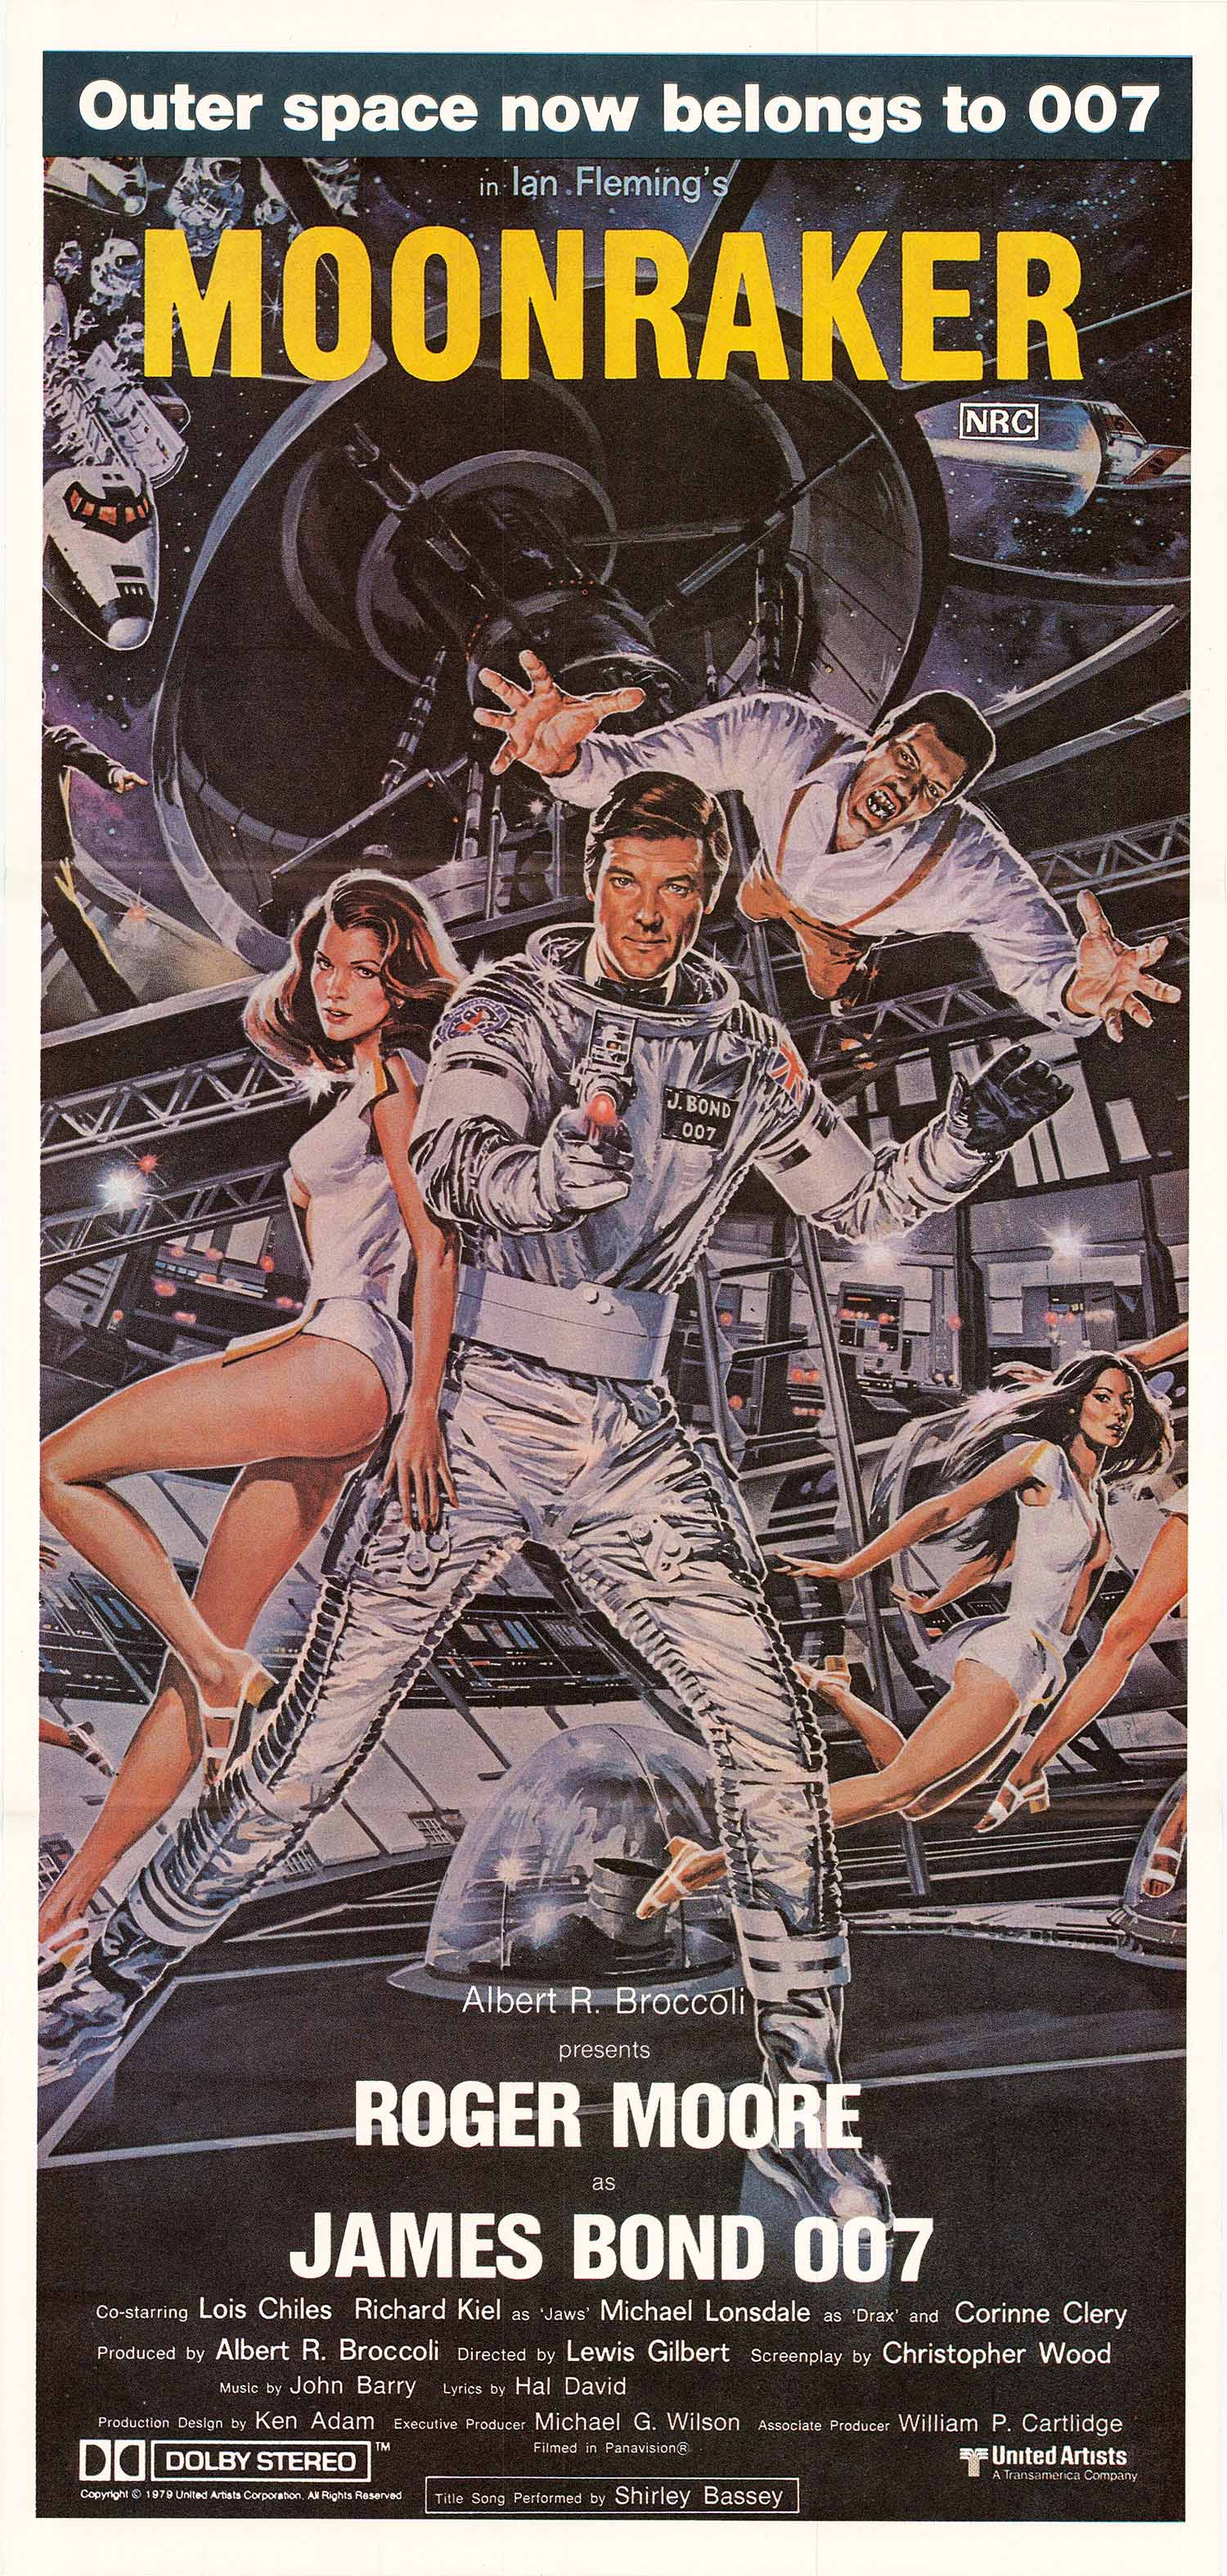 Pictured is an Australian daybill poster made to promote the 1979 Lewis Gilbert film Moonraker starring Roger Moore as James Bond.